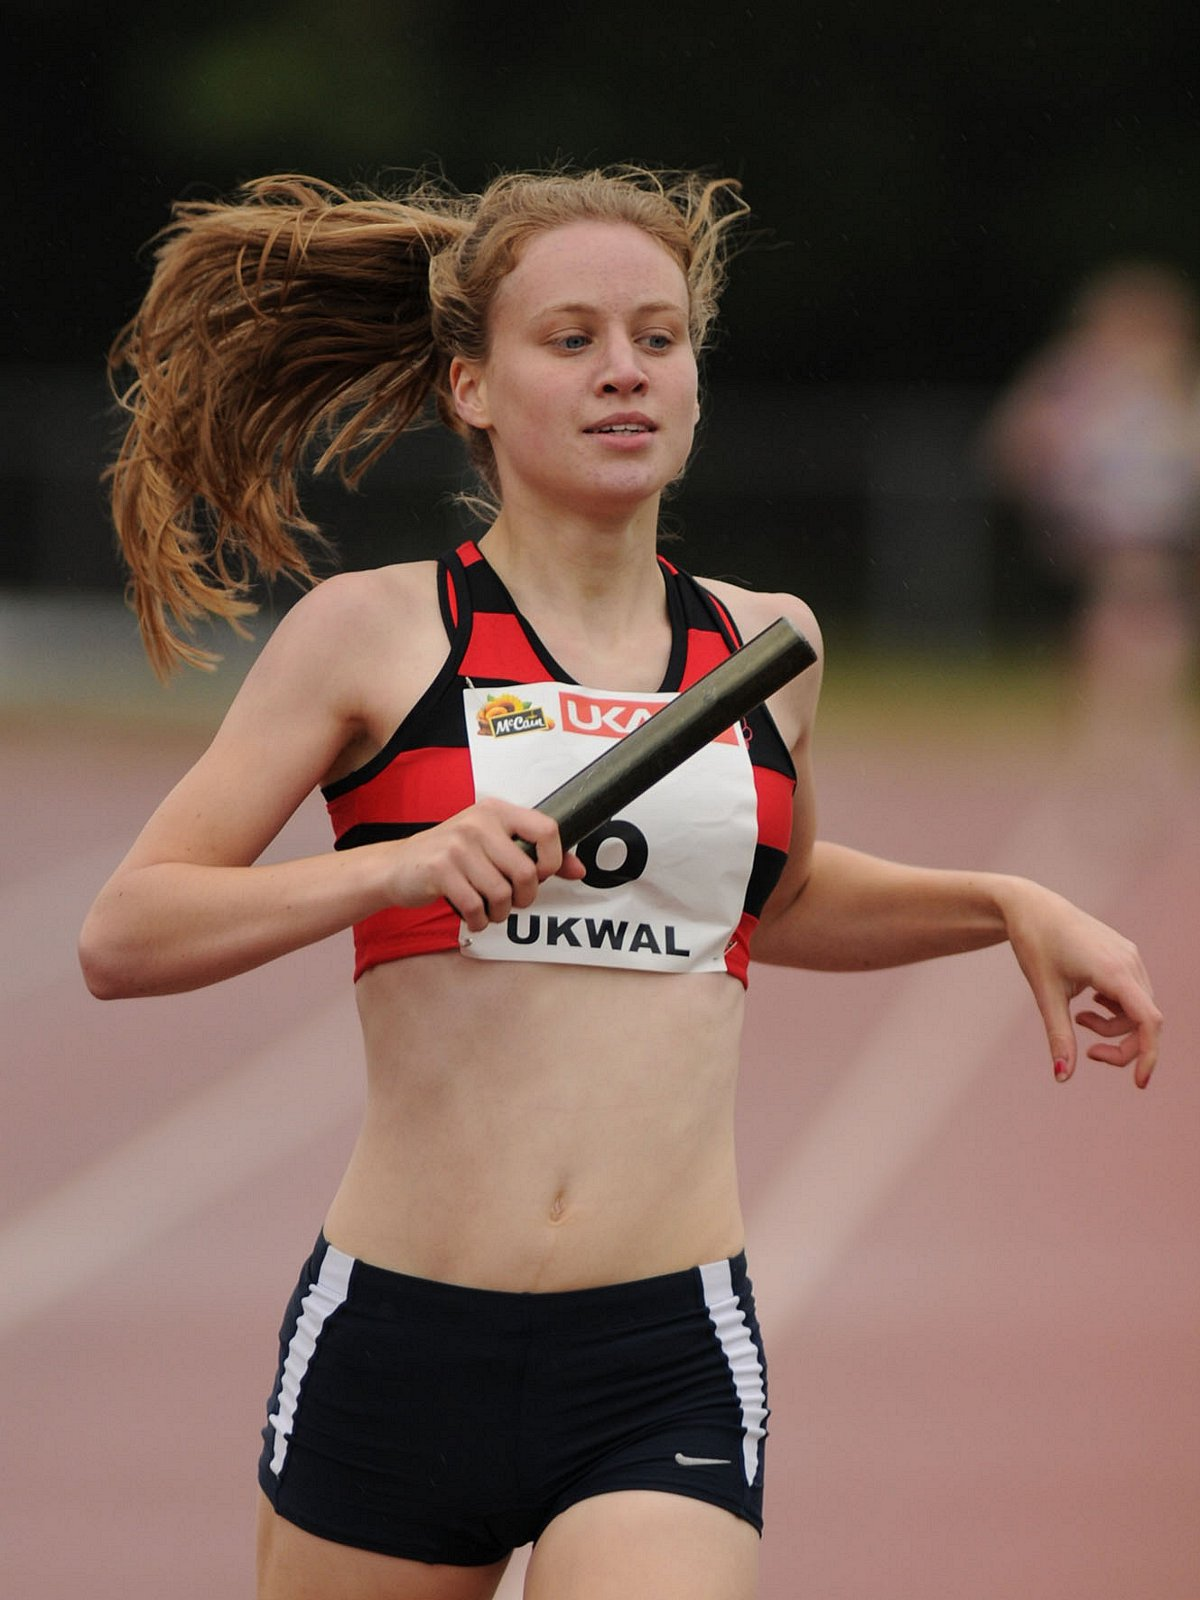 Record-breaker: Katie Snowden now holds the club record over 800m outdoors